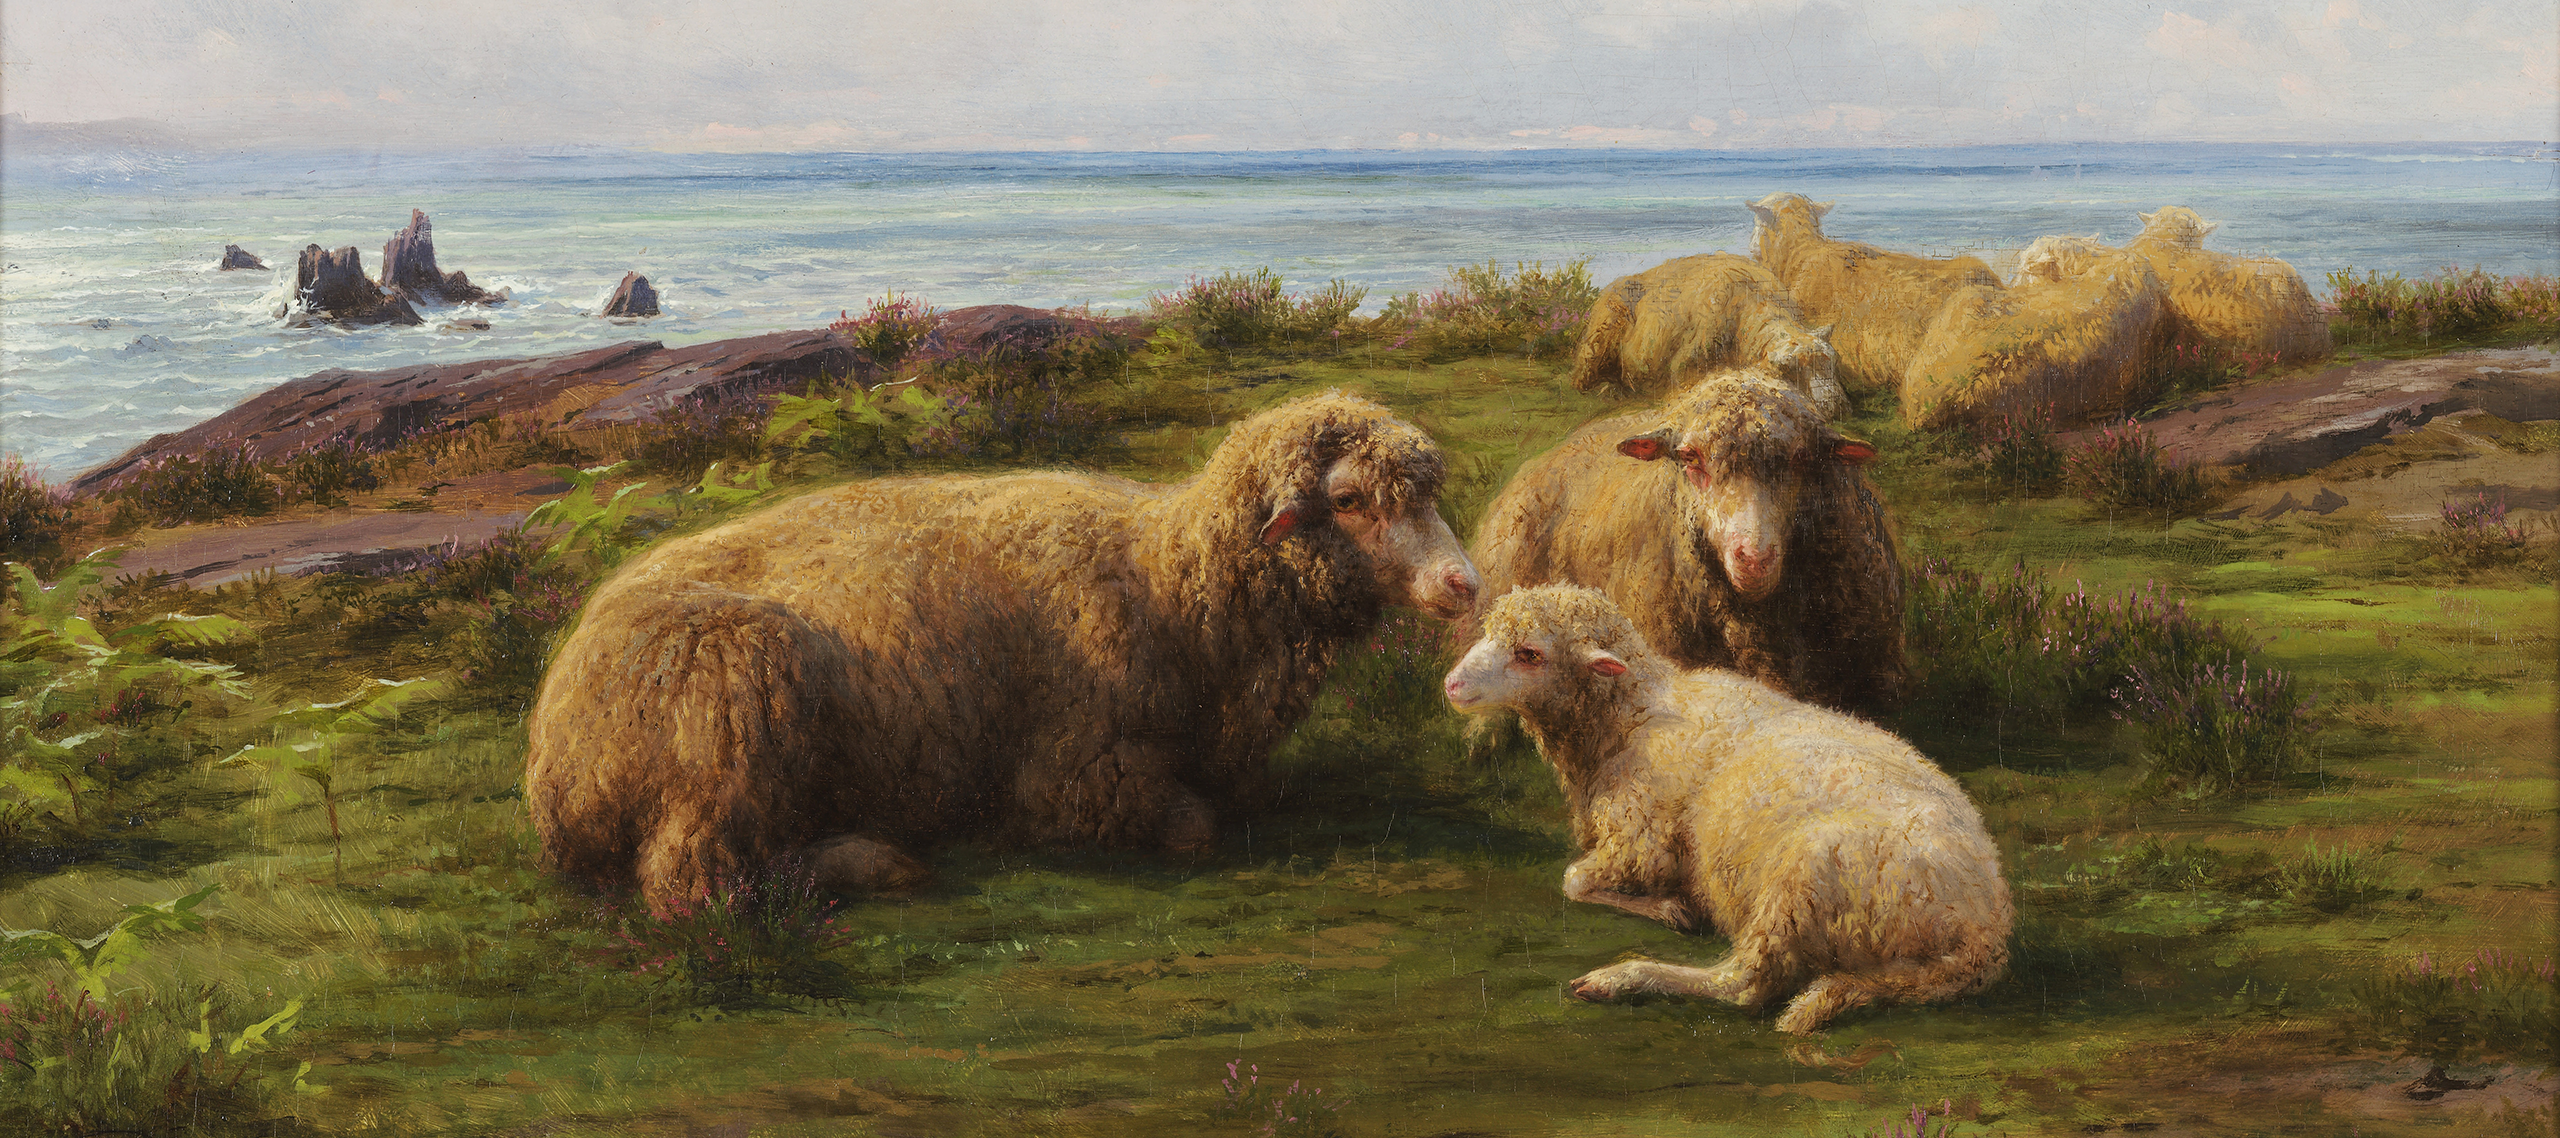 A flock of sheep rest on a green hill by the sea. In the center, two adults and a lamb lie in a group. Flat rocks are visible through the grass. The sky has rolling clouds, and a breeze is suggested by the waves crashing on rocks in the sea, which stretches to the horizon.